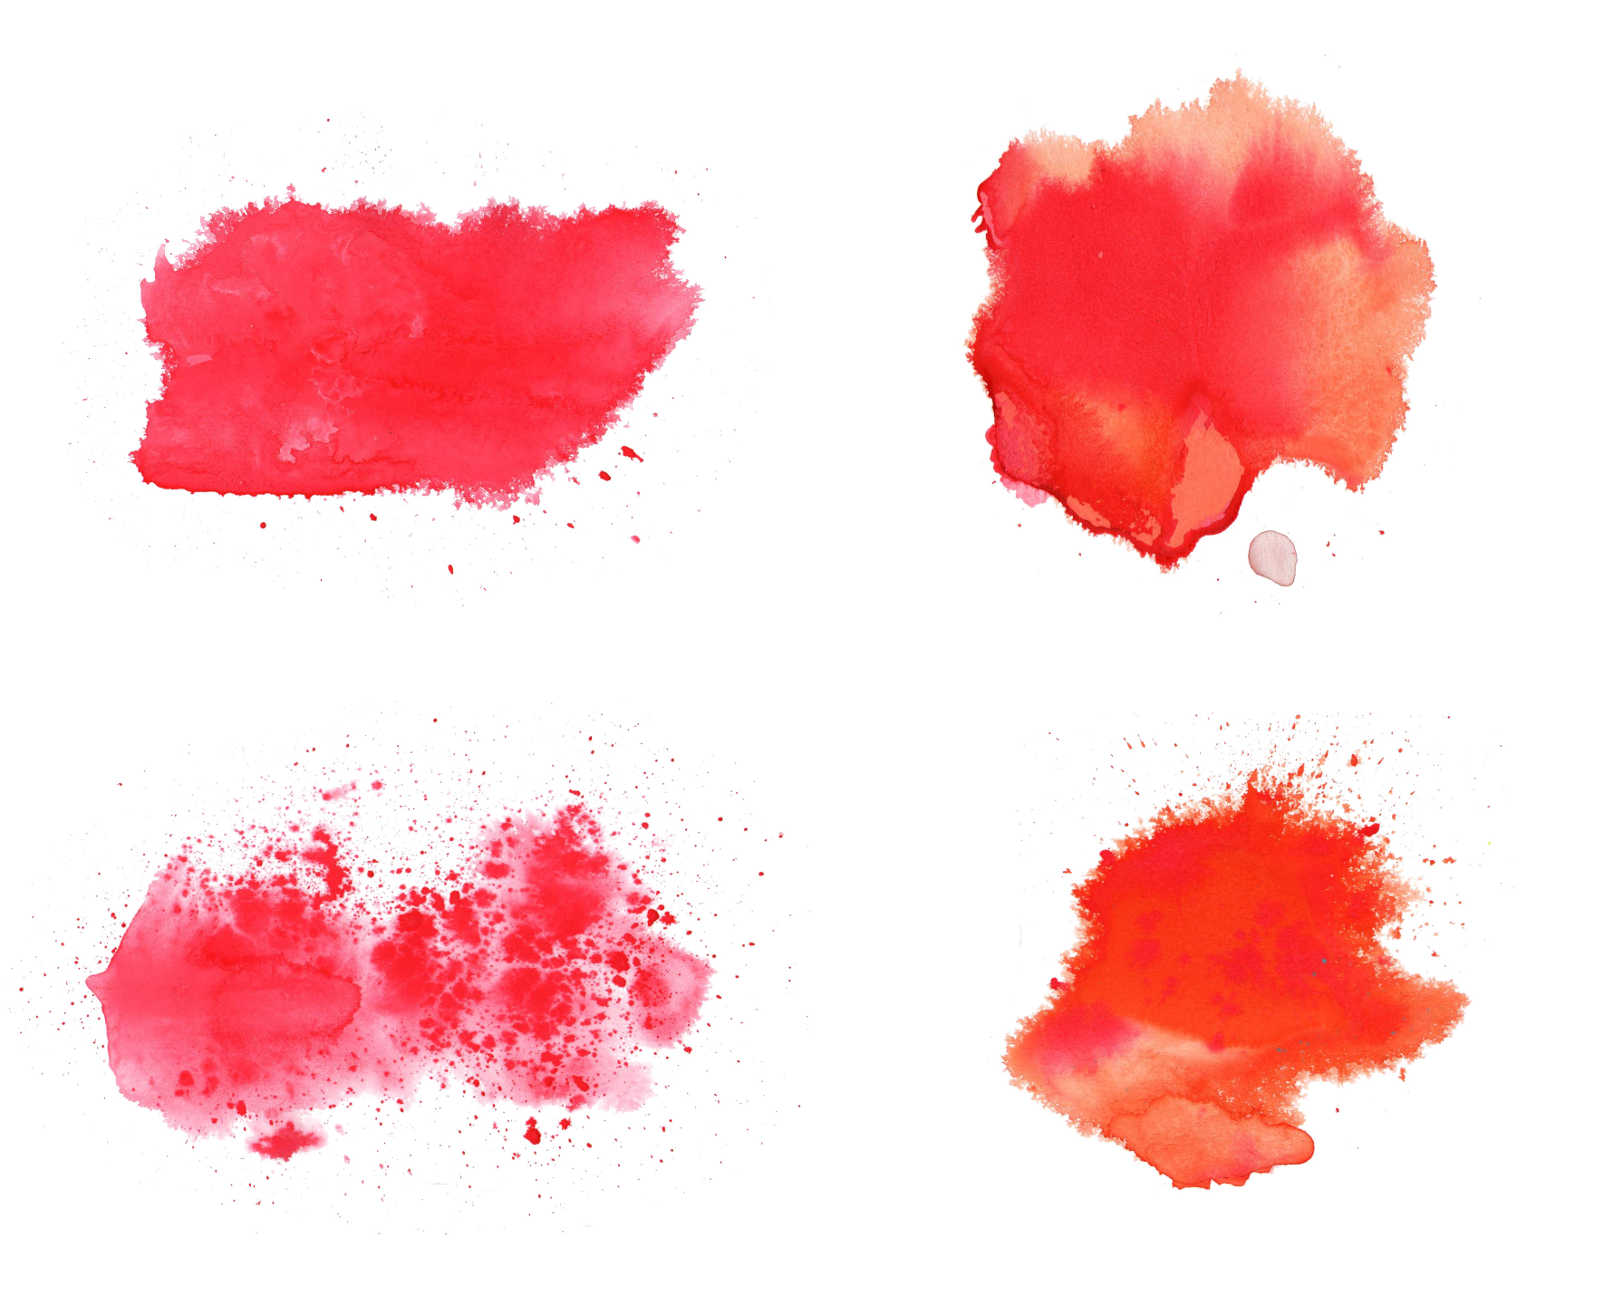 Book Cover Watercolor Red ~ Red watercolor background jpg onlygfx